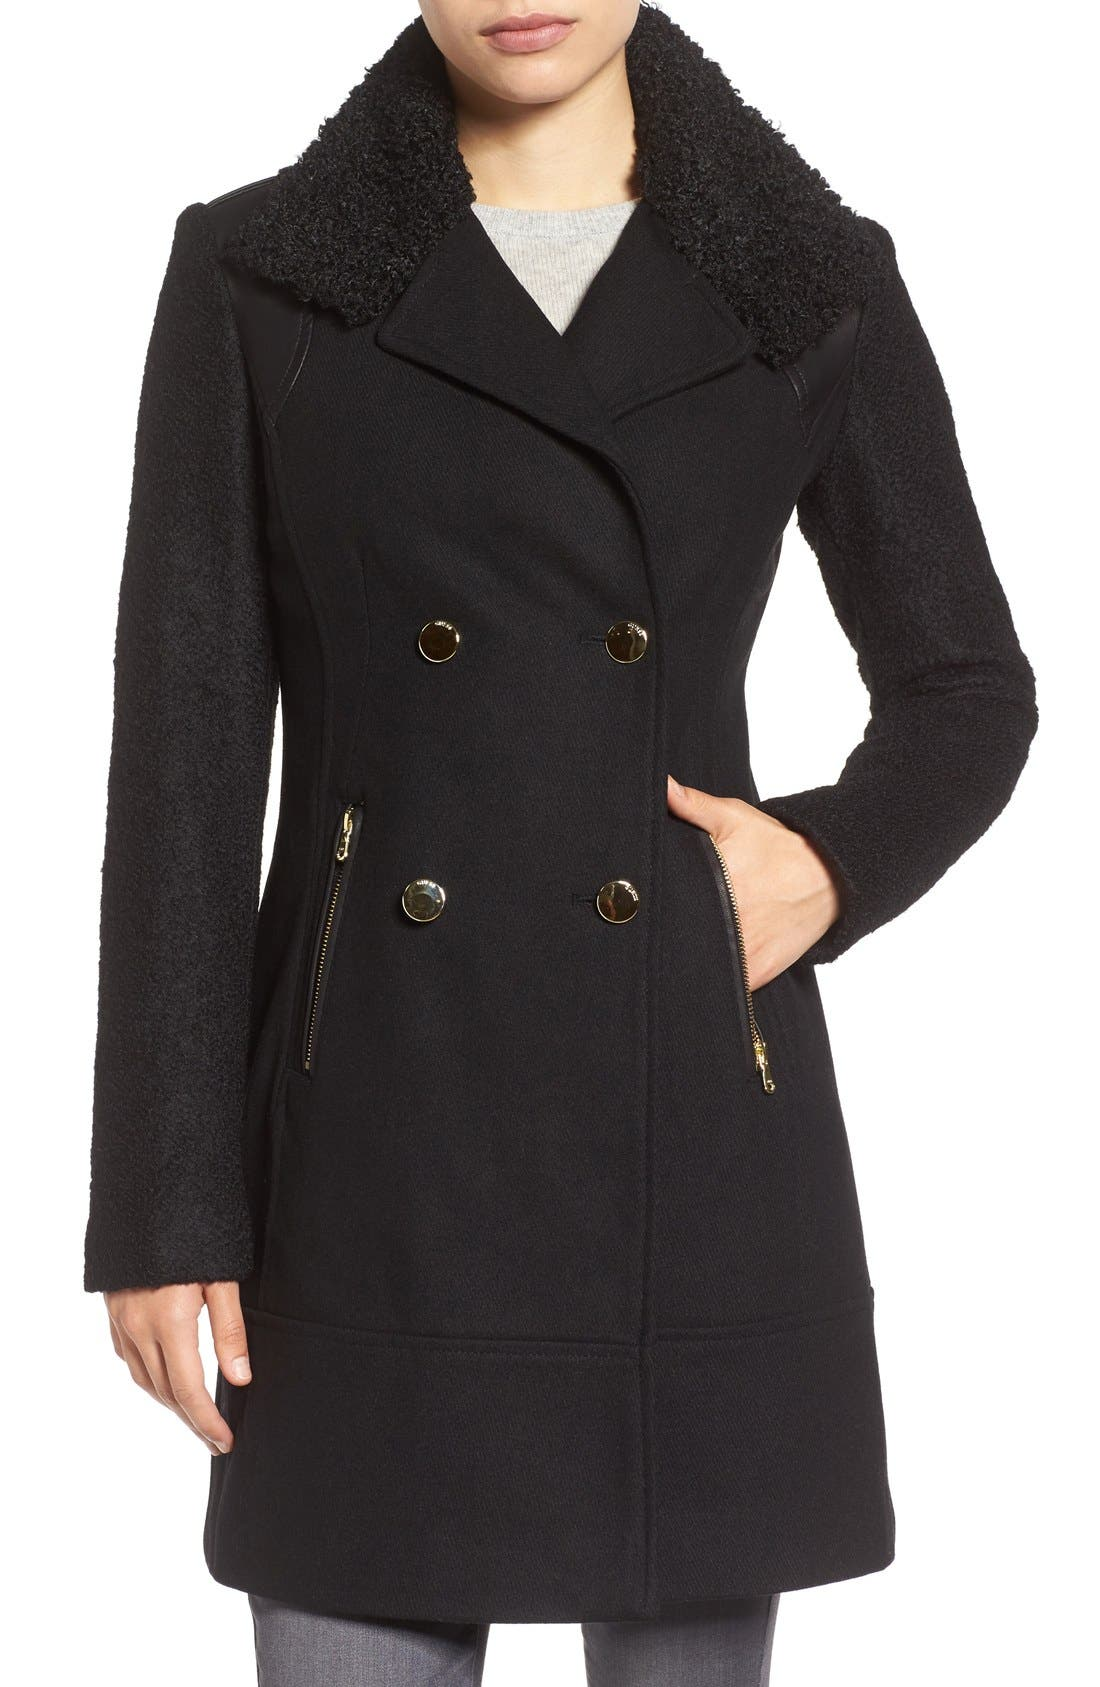 Main Image - GUESS Bouclé Sleeve Wool Blend Military Coat